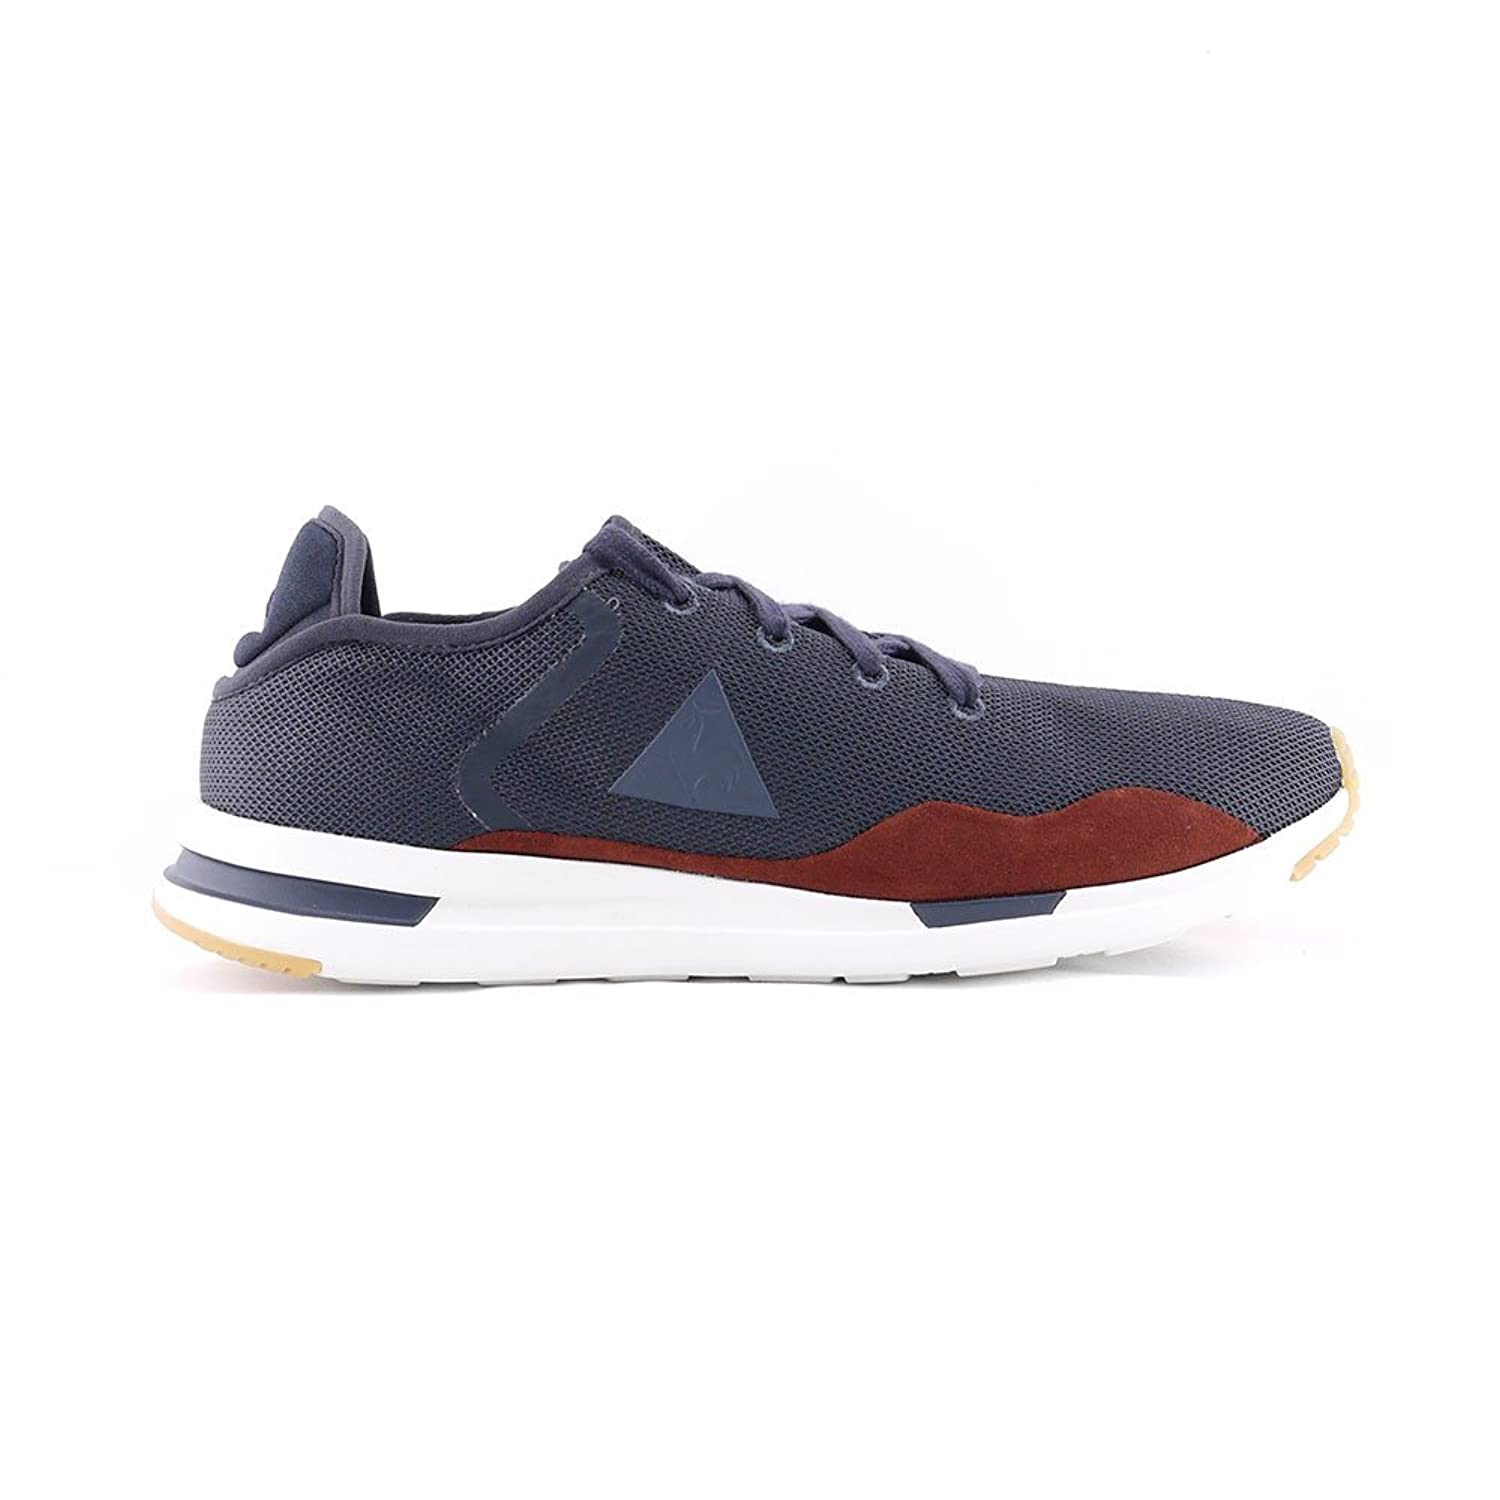 Le Coq Sportif Solas Craft Suede Nine Iron Viola